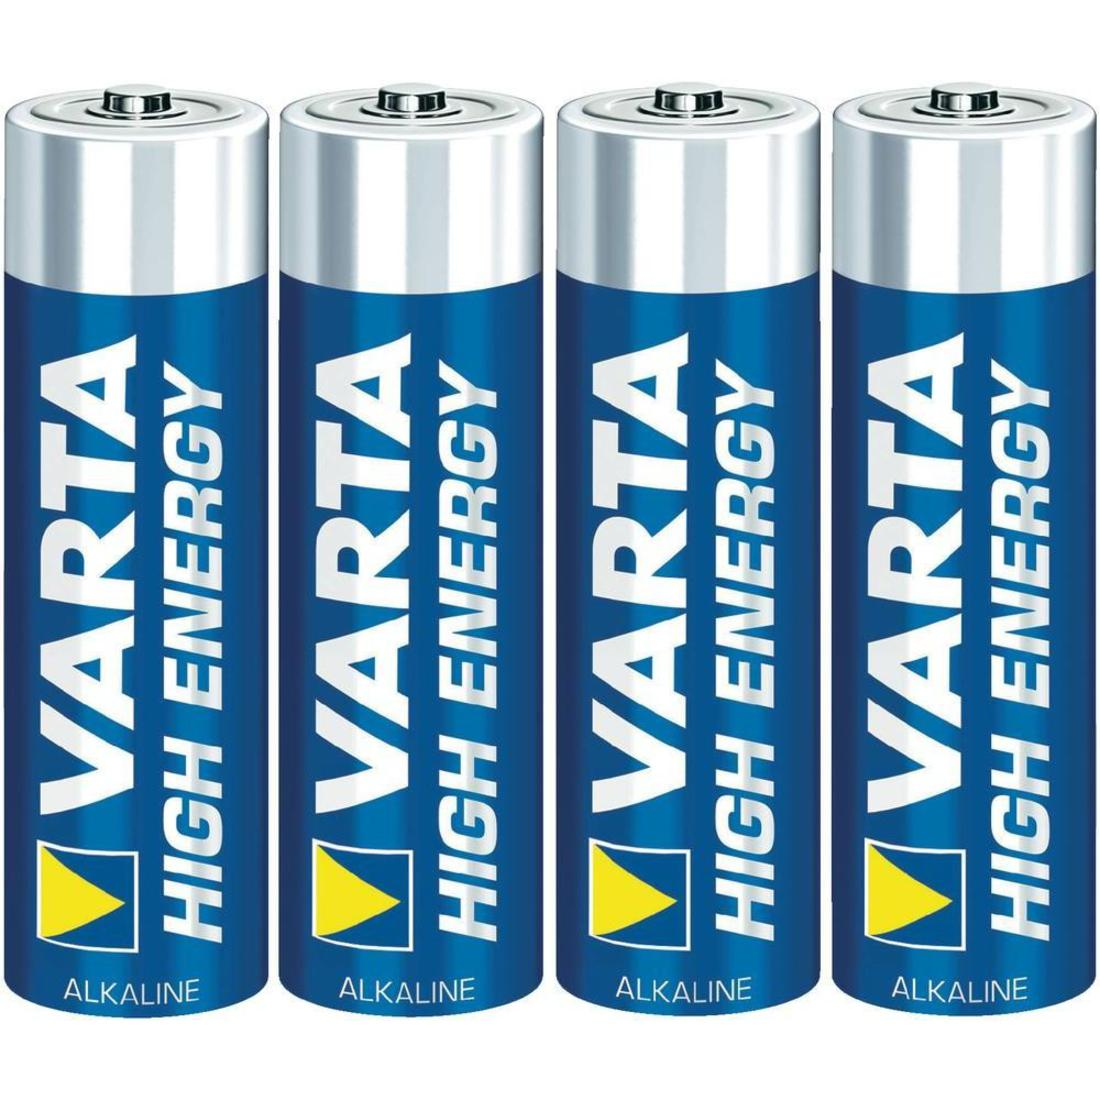 varta batteries getdigital. Black Bedroom Furniture Sets. Home Design Ideas